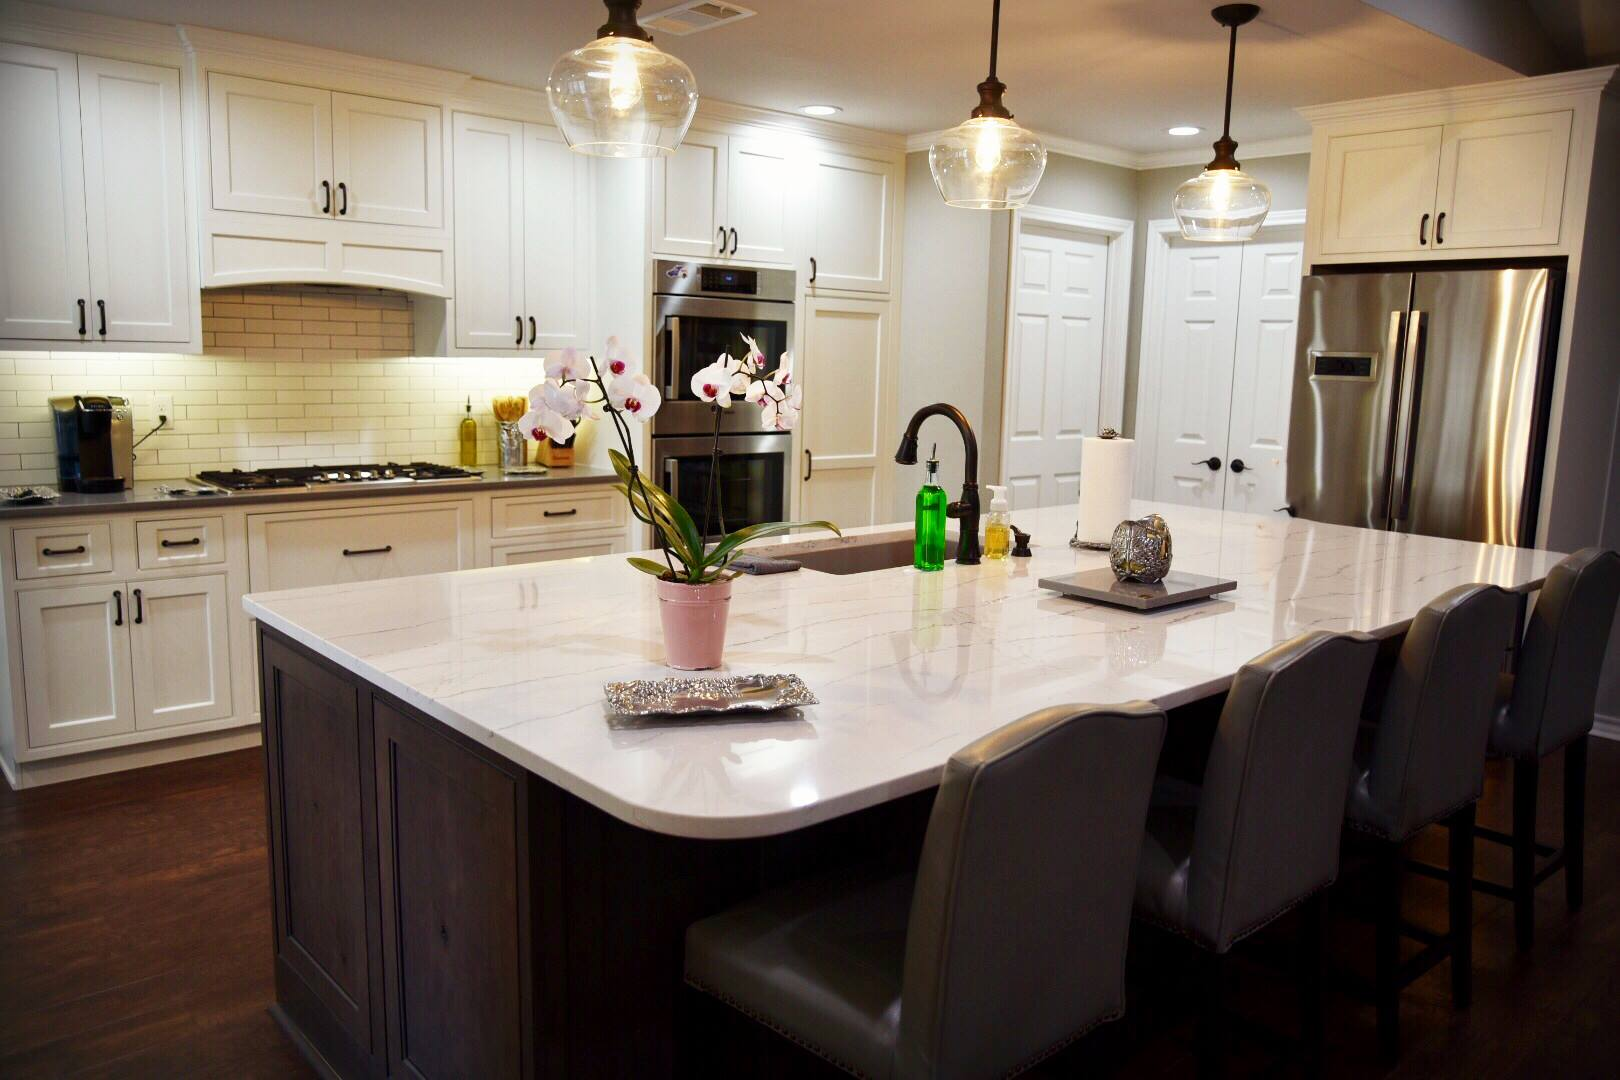 Cambria Countertops, Shiloh Cabinetry, Bosch Home Appliances,  Masonite Doors ,  Karndean Flooring , and  Coronado Stone Products make this local project a real treat for us to showcase.